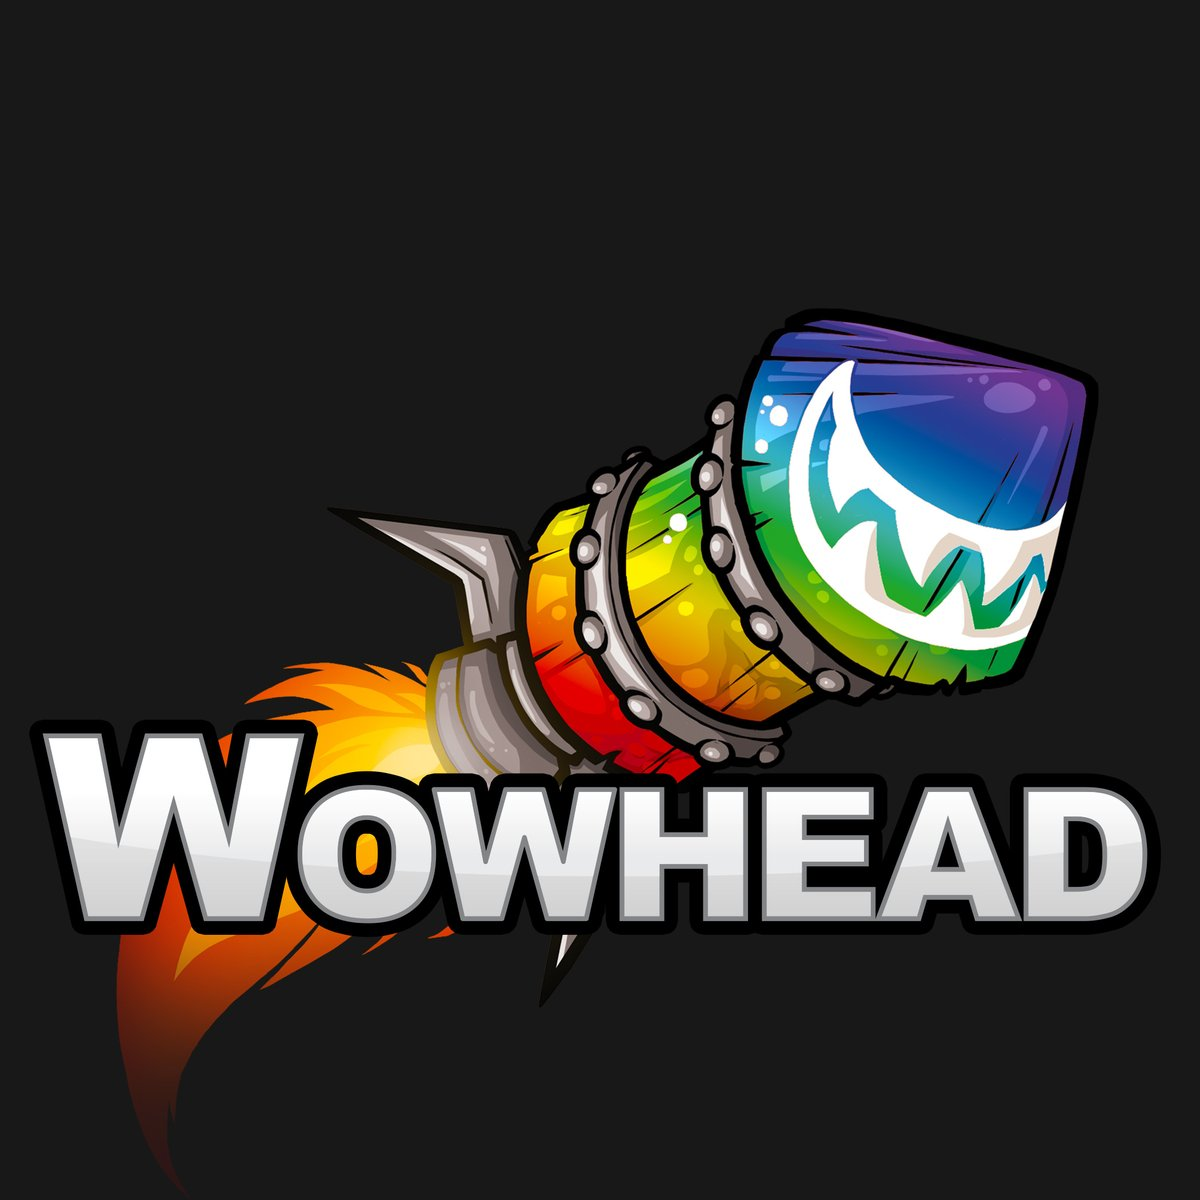 Wowhead On Twitter Wowhead Celebrates The History Of The Lgbtq Community Finding Acceptance Throughout The World And Their Continued Efforts For Equality We Hope Others Will Share In That Endeavor Please Enjoy